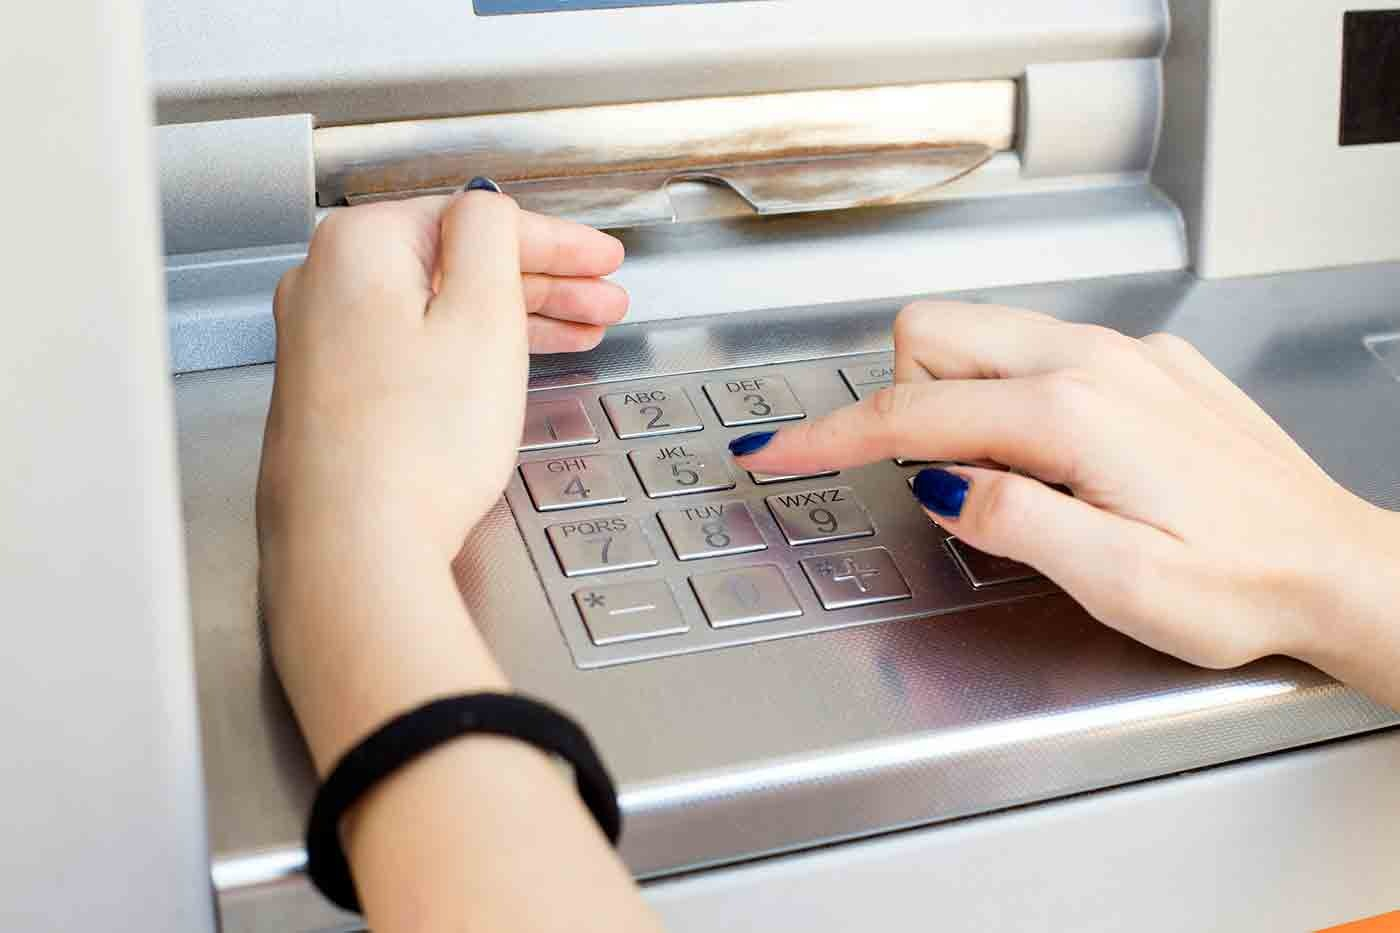 Hands on ATM Keypad (Stock Image)